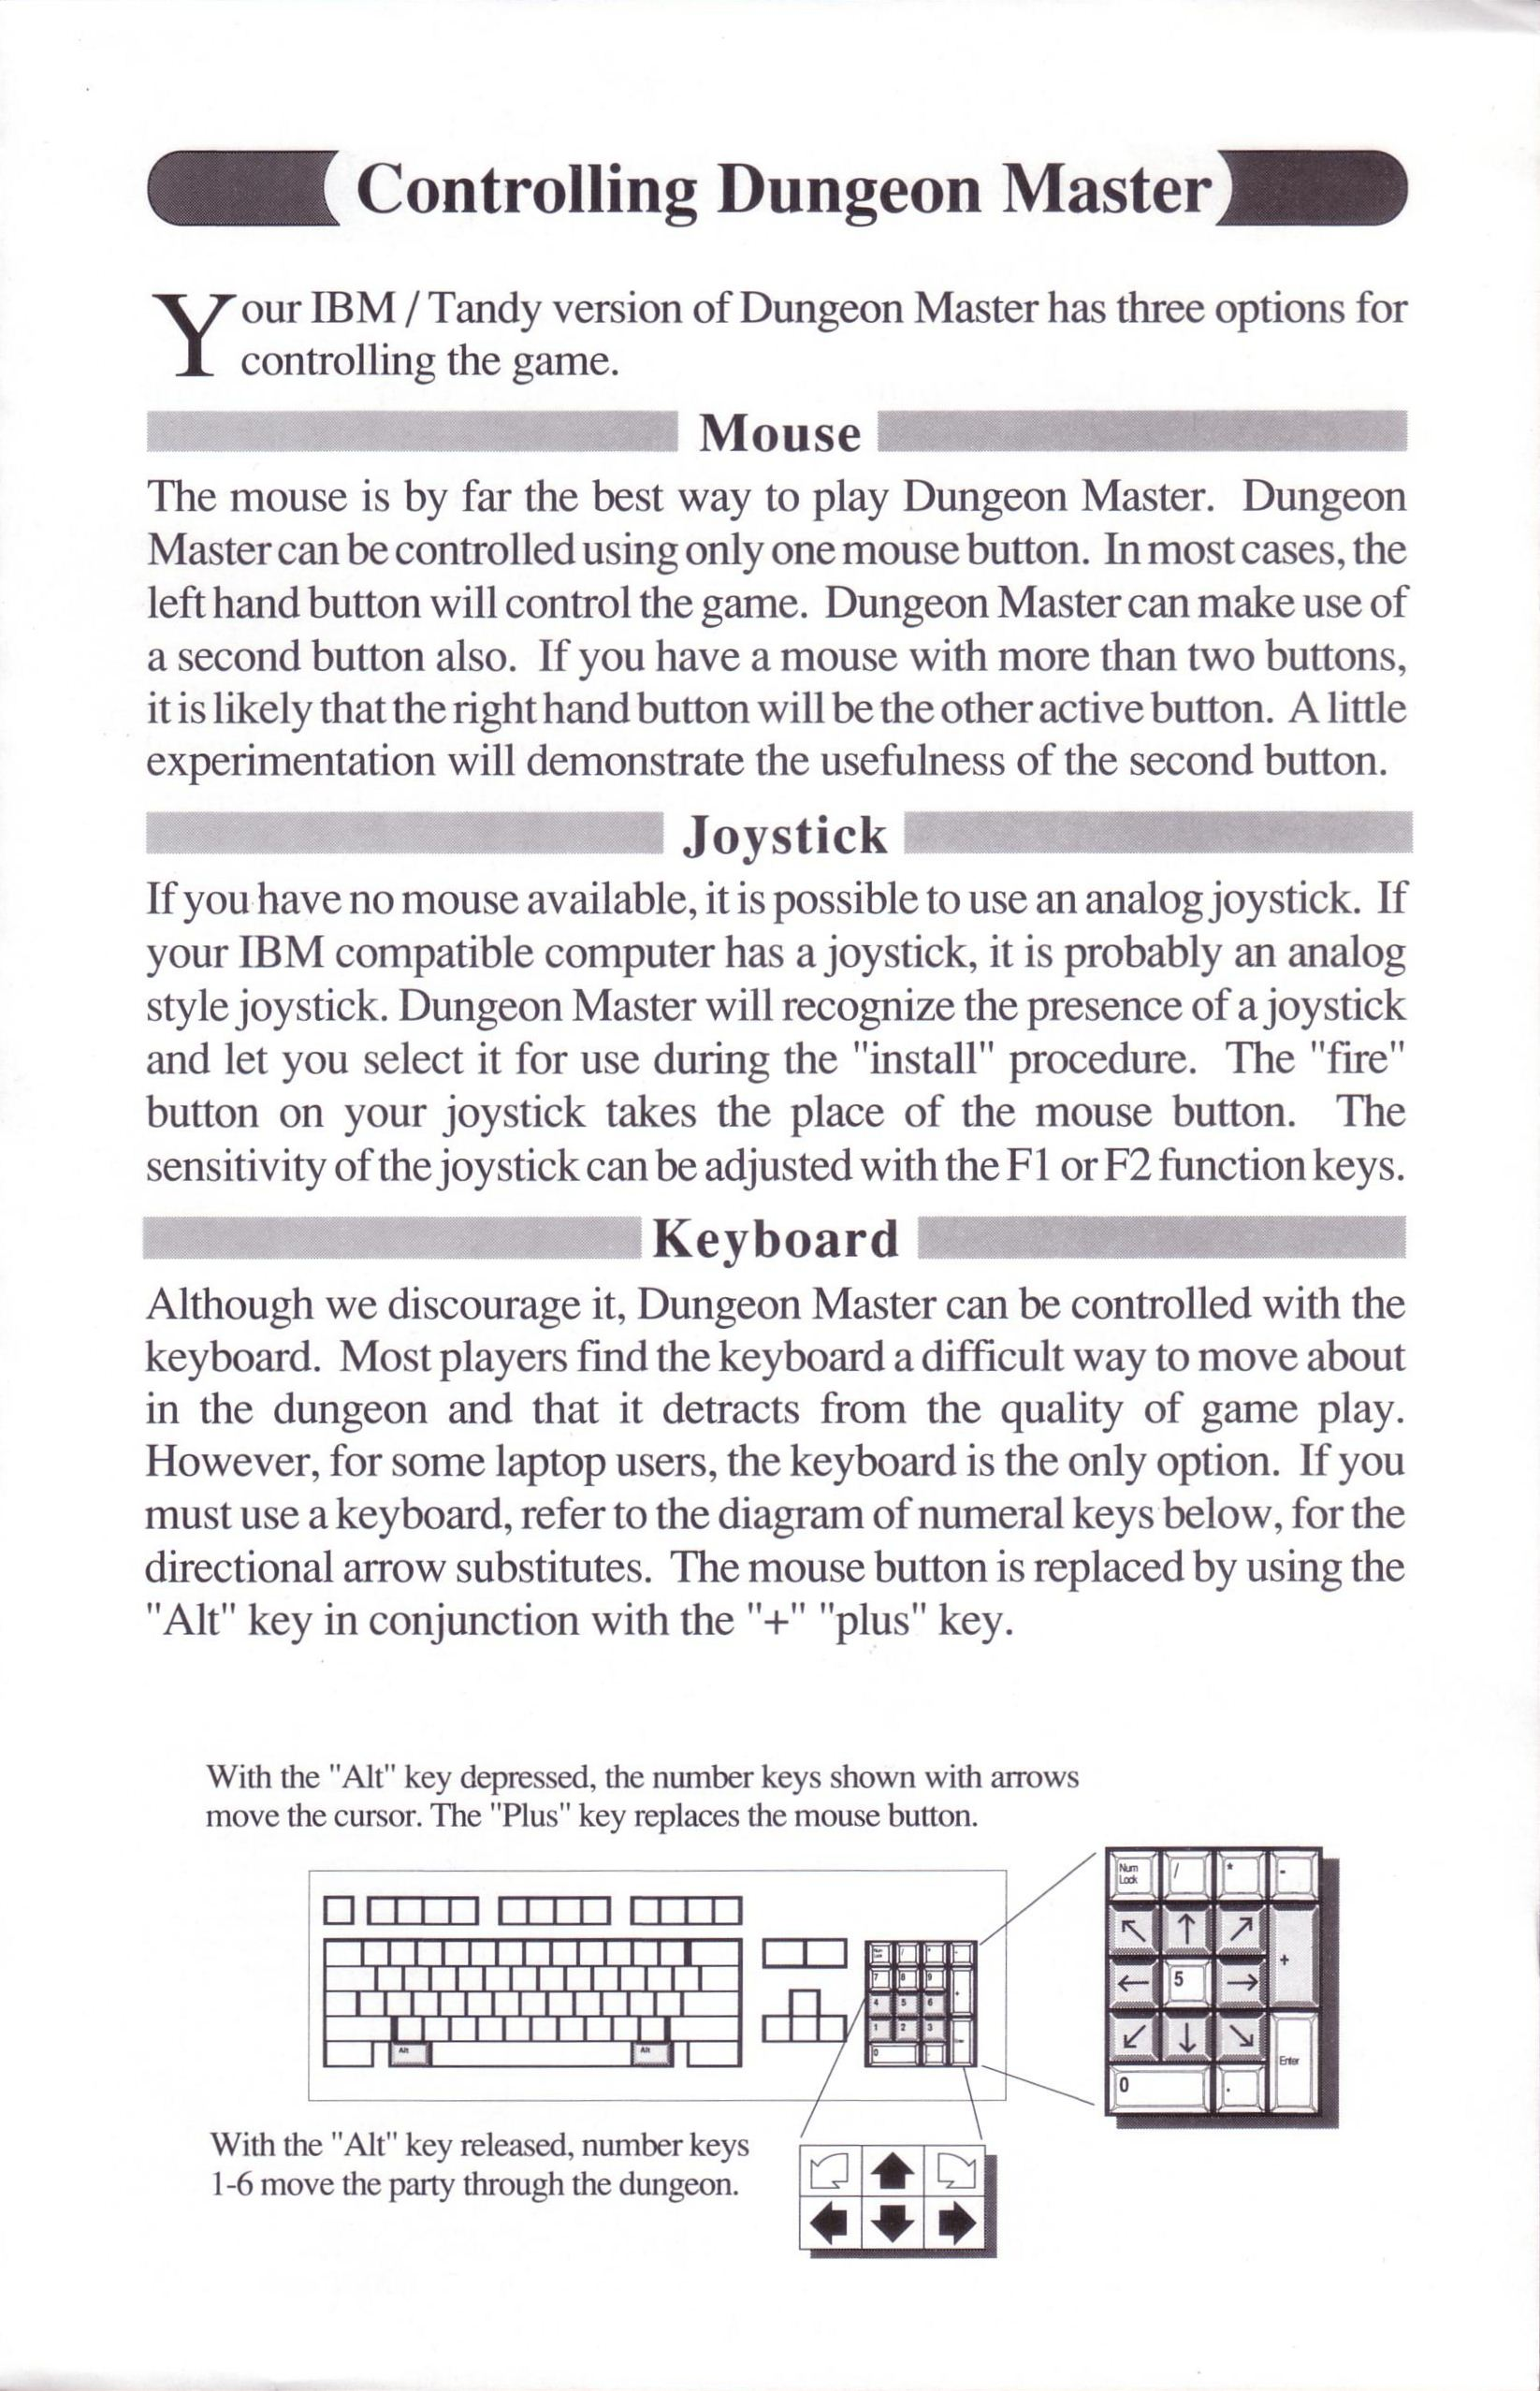 Dungeon Master for PC with FTL Sound Adapter (US Release) - Quick Start Guide Page 3